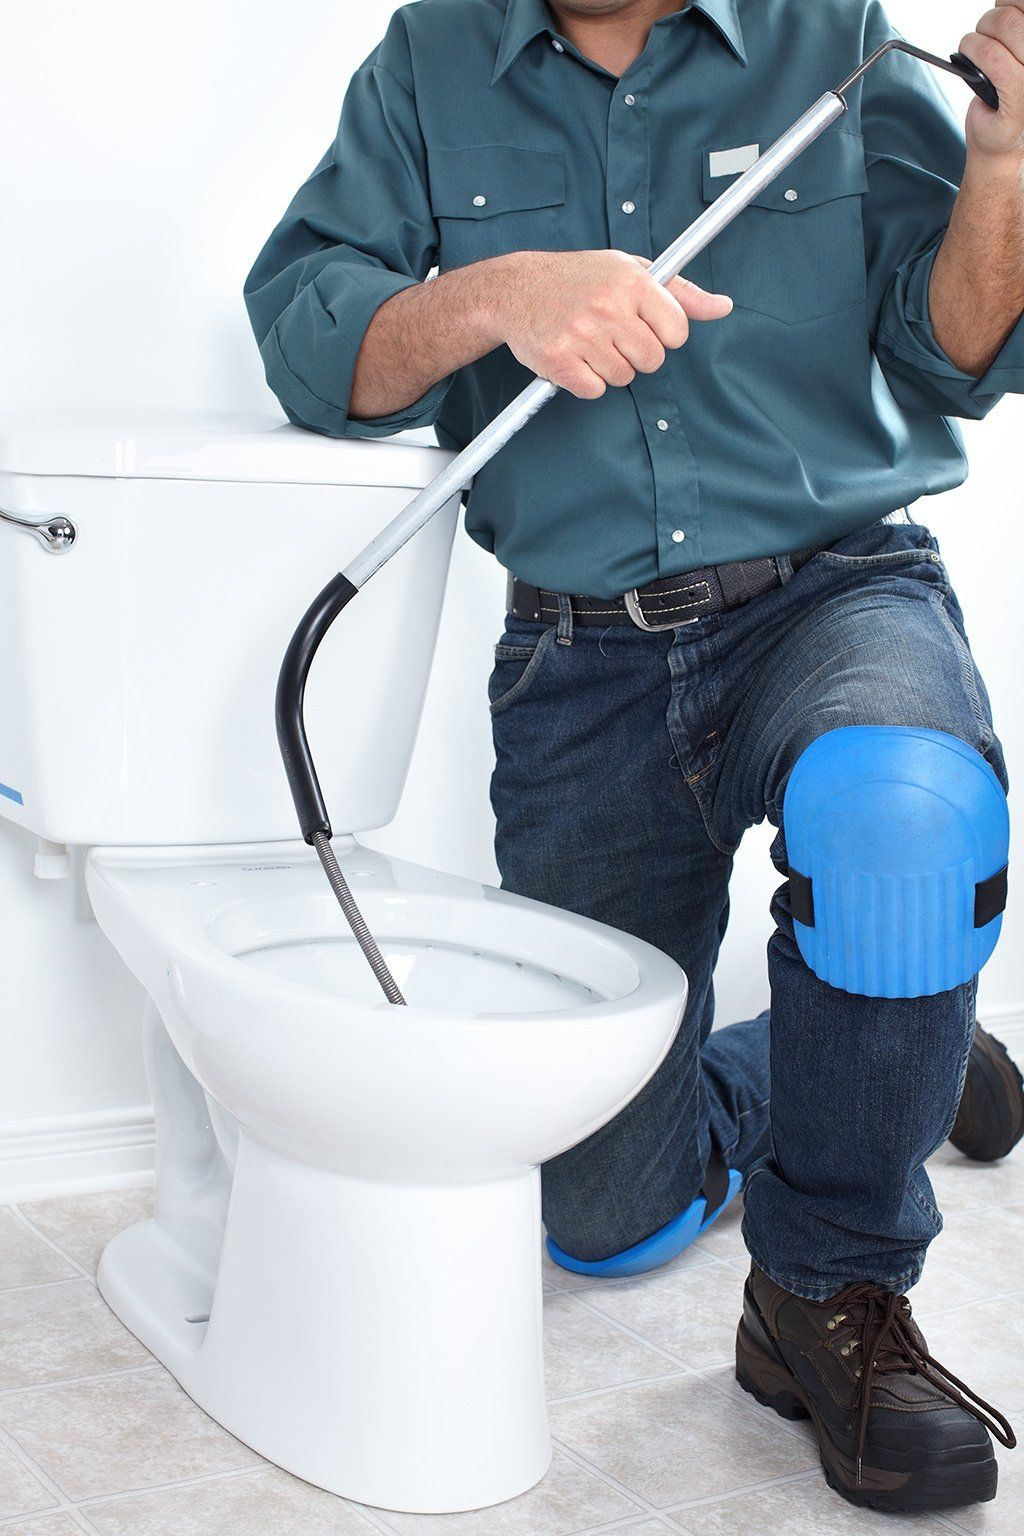 8 Plumbing Problems You Should Know About | Tips from Your Costa Mesa, CA Plumber